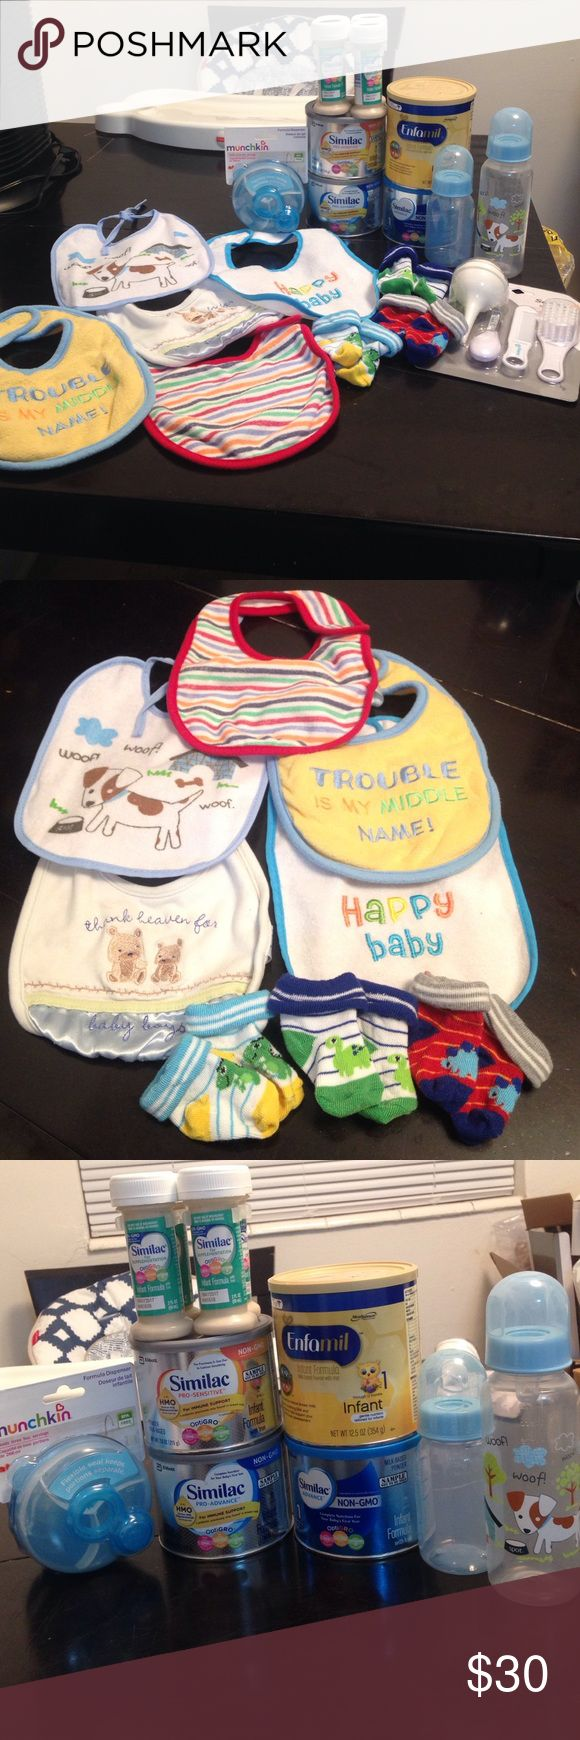 Infant bundle lot! Everything for new baby! All brand new, never opened or used. Bundle comes with 5-bibs. 3-pairs of dinosaur socks. 2 bottles. 9 oz and 5oz (BPA- FREE), 4-cans of infant powdered formula. Similac advanced, similac pro-advanced, similac pro- sensitive and Enfamil. Expiration date for all powered formula(April 2018) 4-2FL oz liquid formula (expiration date may 2017) 1-formula Dispenser. And a safety kit. (Pictures listed all items) if you would like to buy anything…